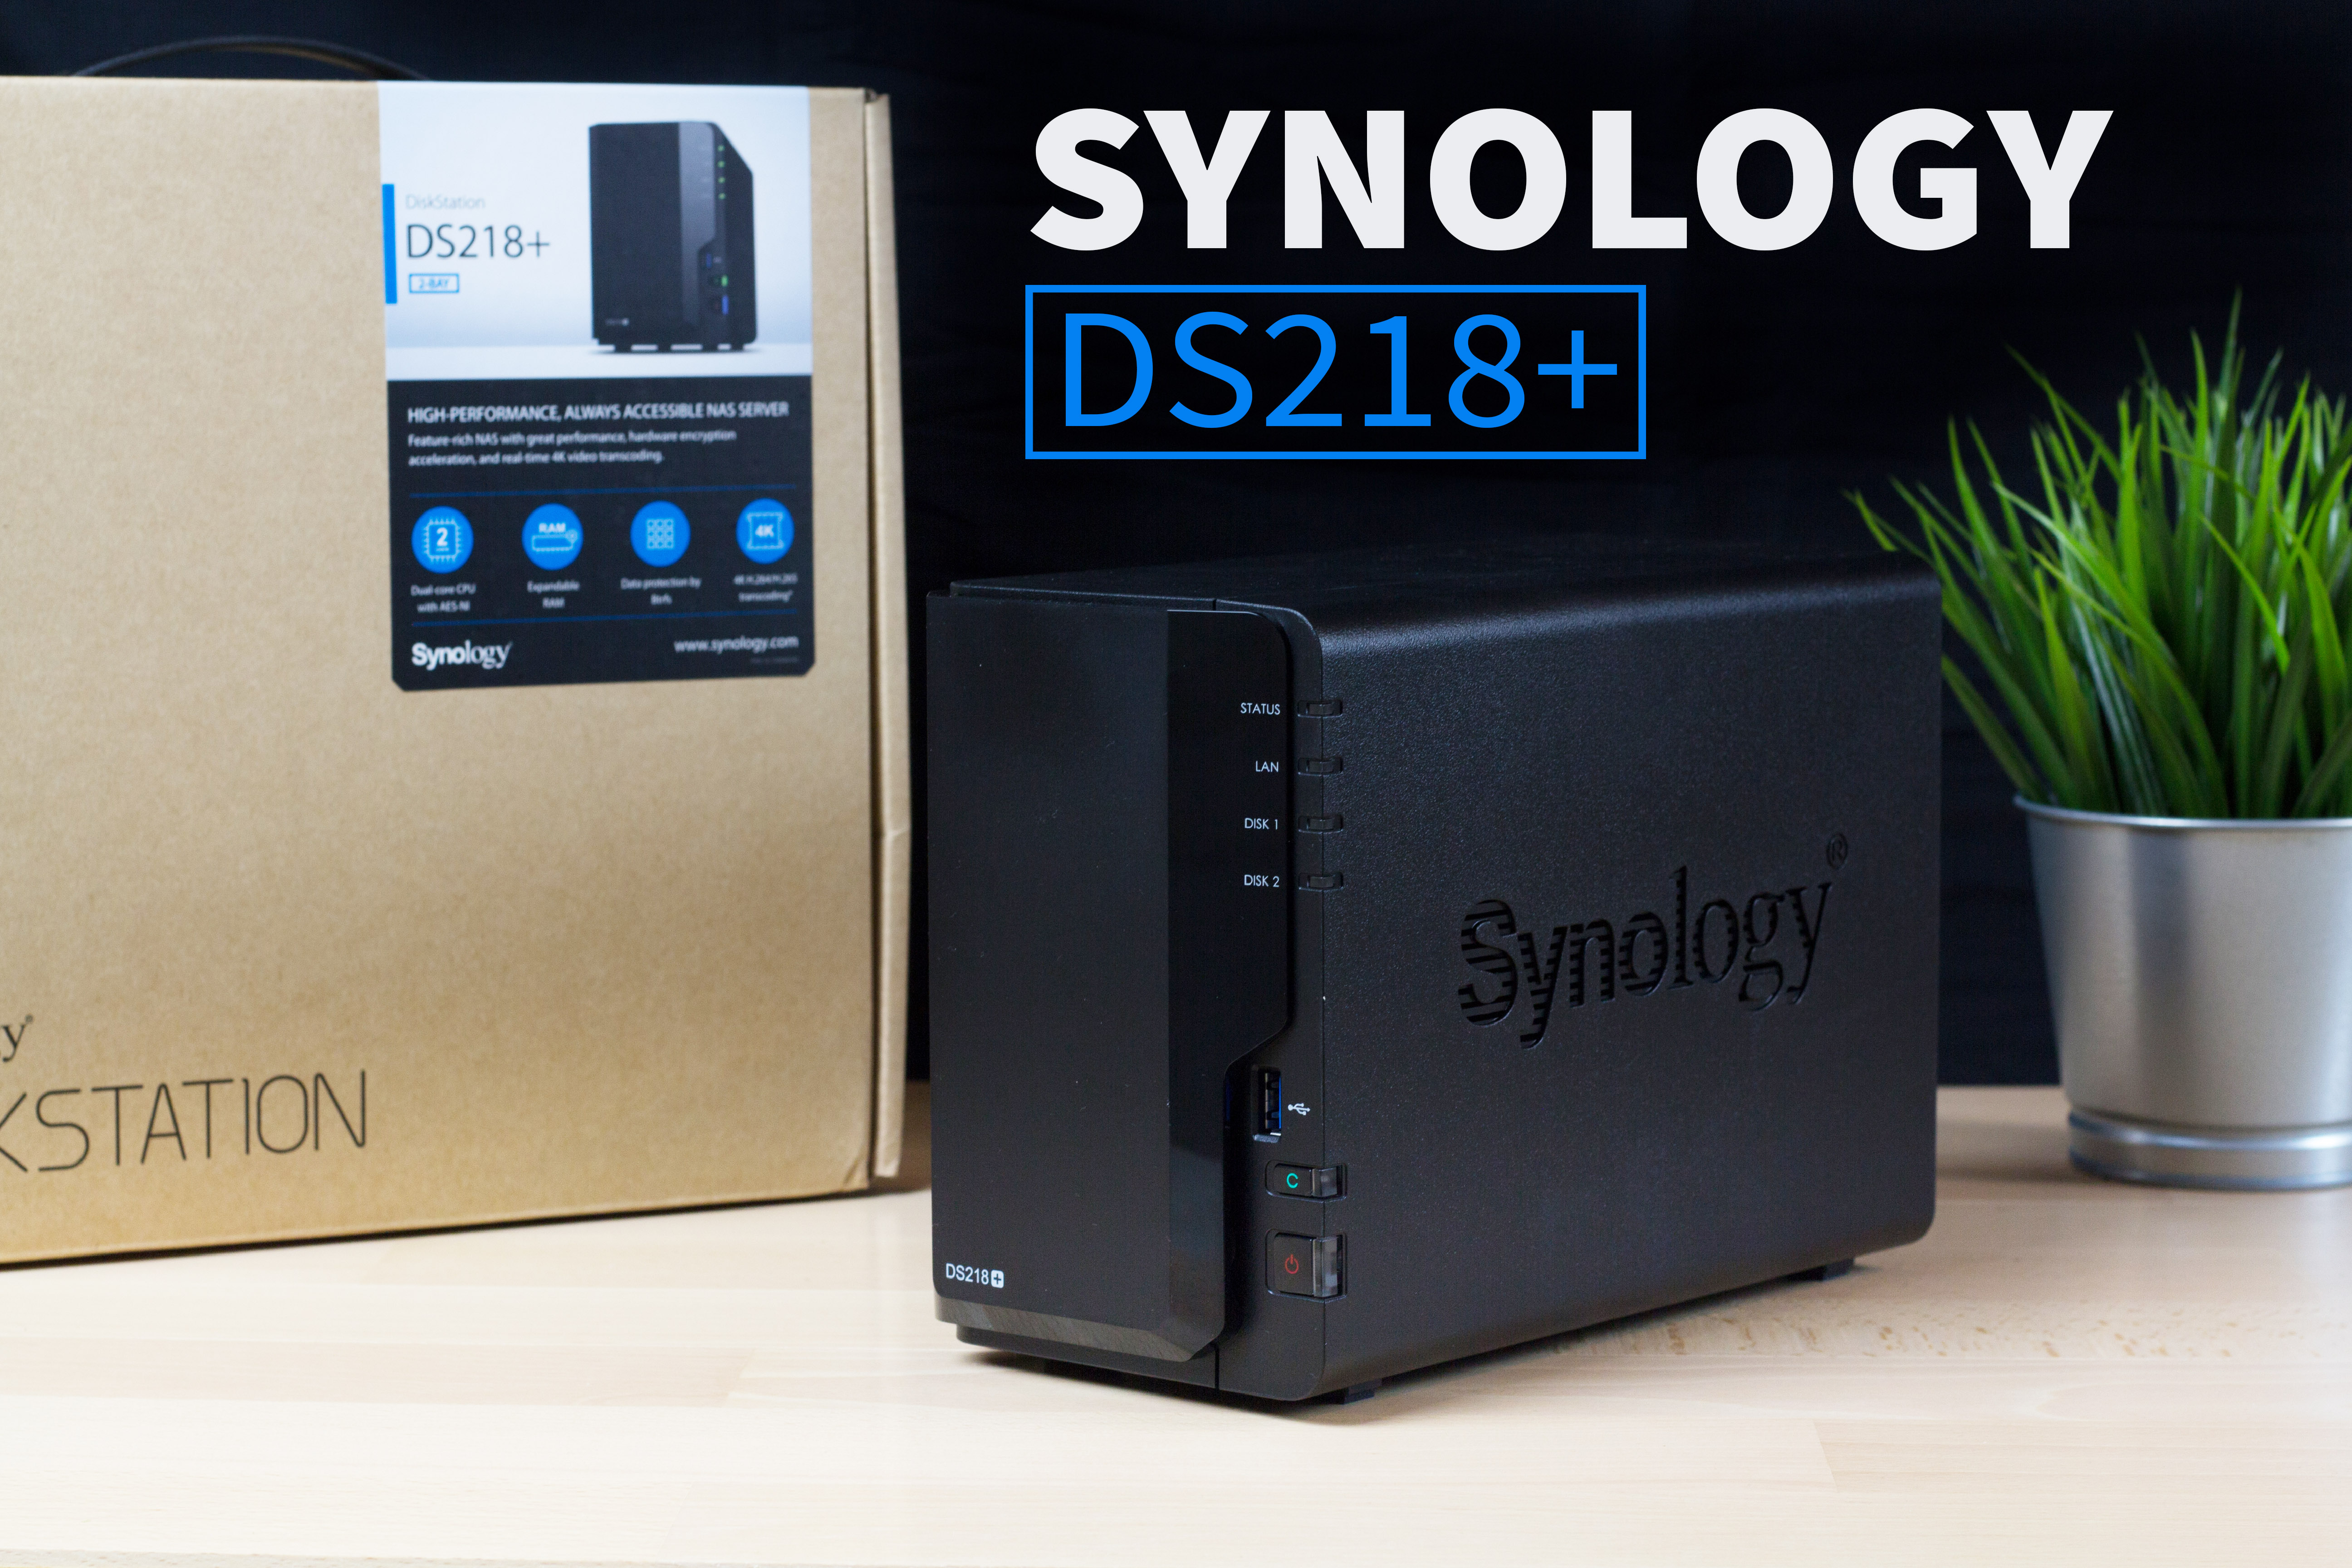 Synology DiskStation DS218+ DigitaleWelt